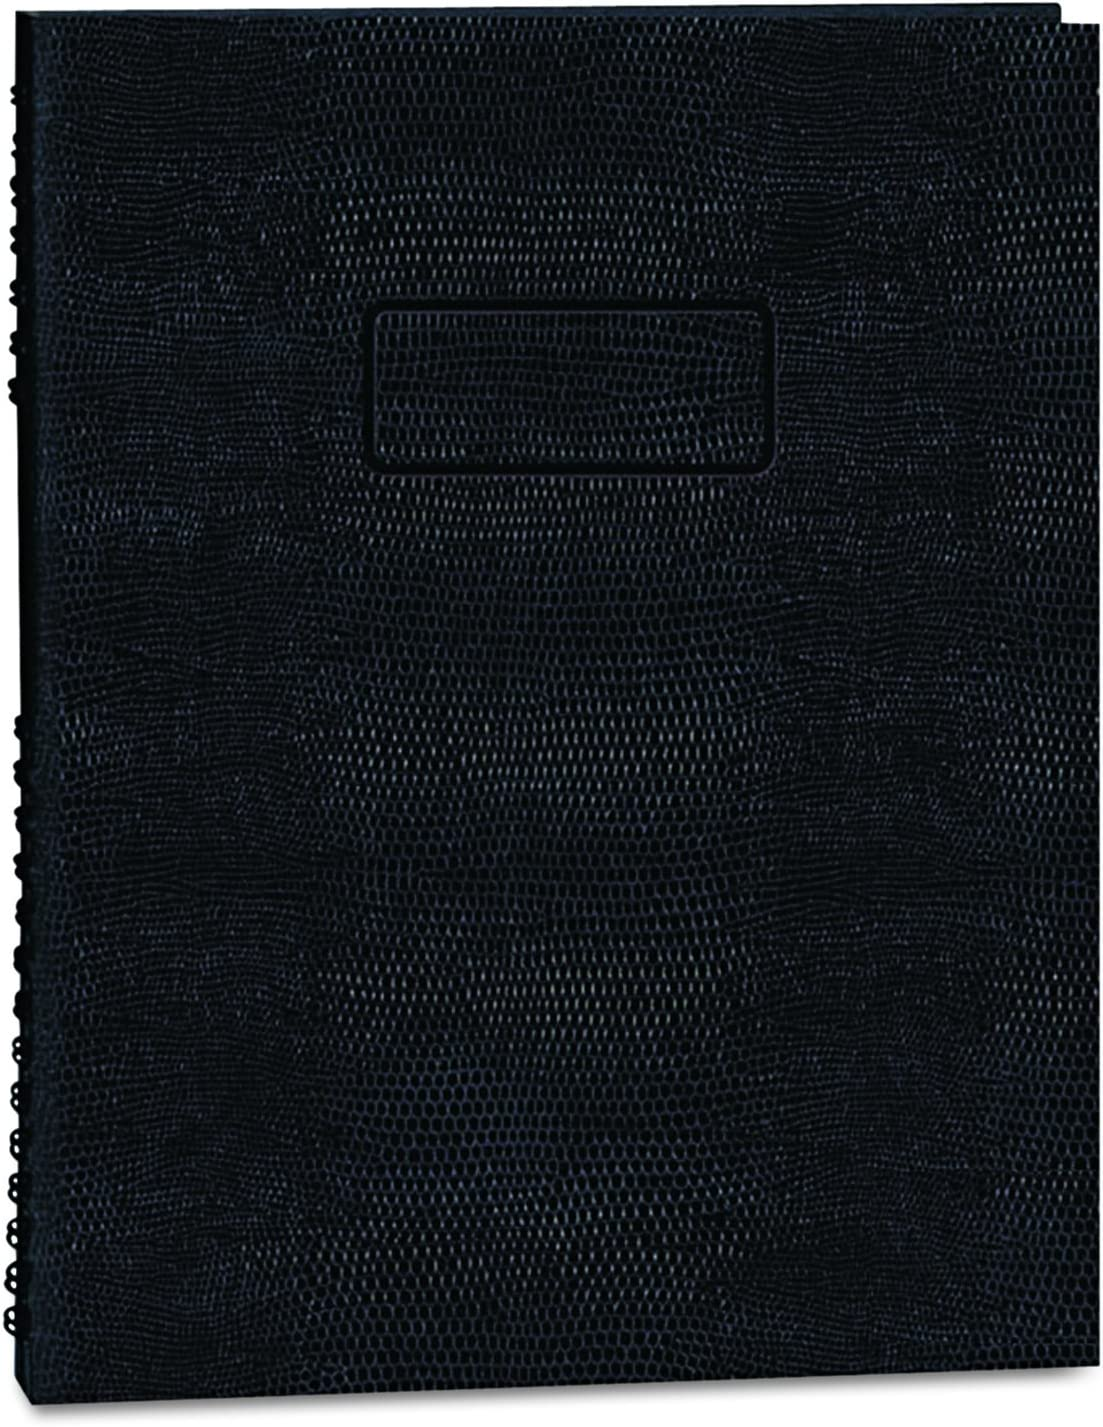 Blueline EcoLogix 100% Recycled NotePro Notebook, Black, 11 x 8.5 inches, 200 Pages (A10200E.BLK)